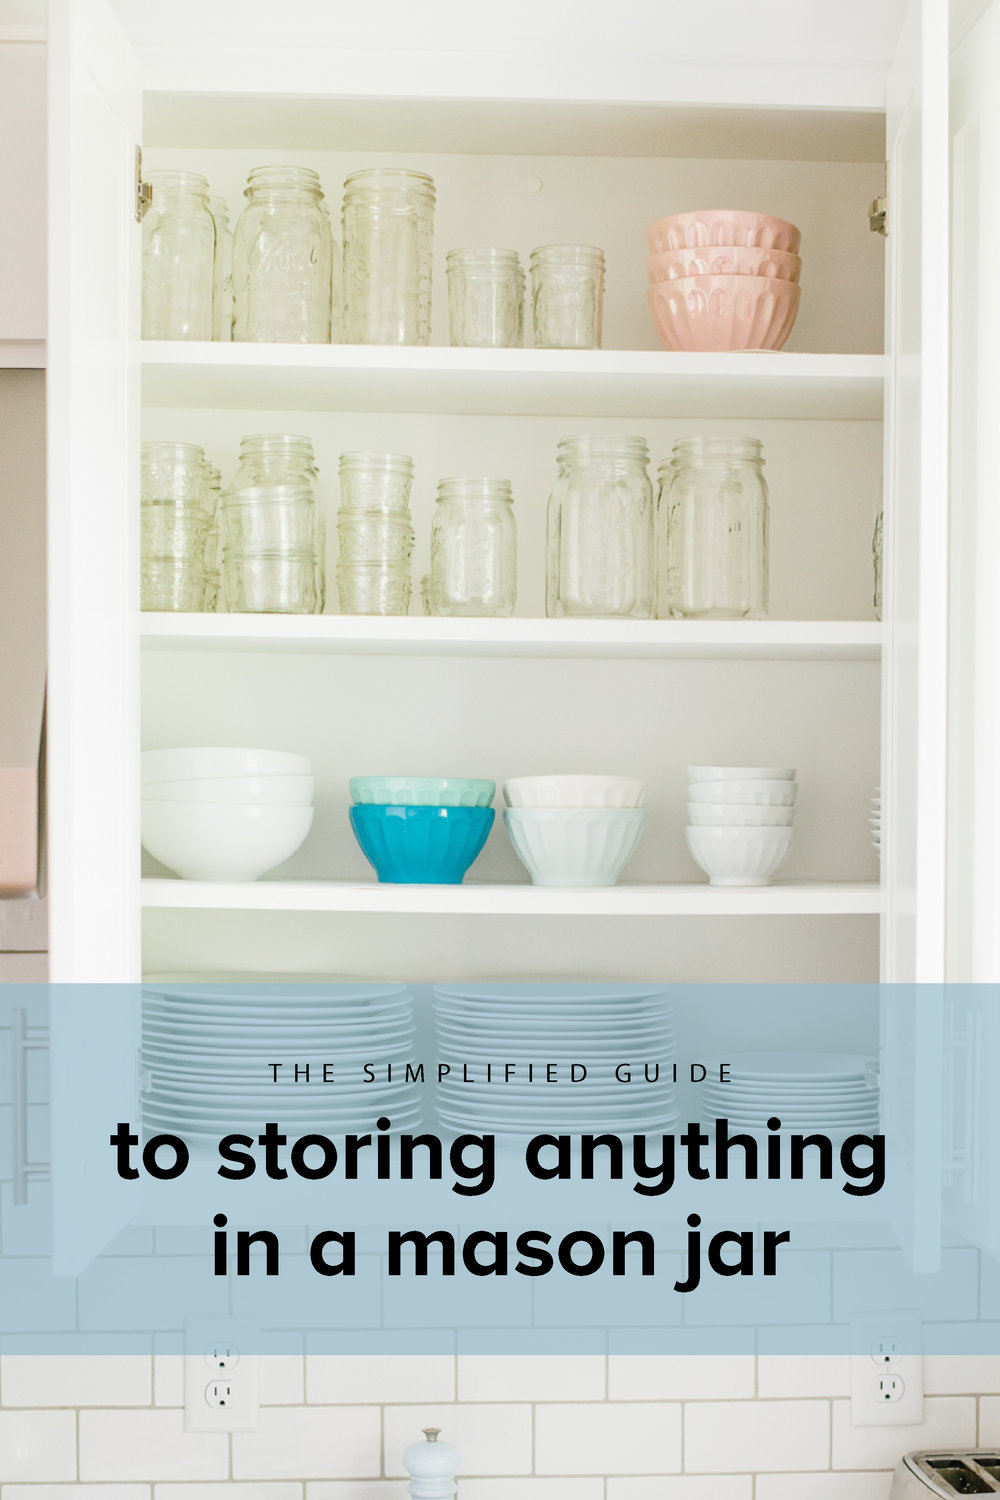 Simple step-by-step instructions for how to use mason jars to store anything, from freezing soup in mason jars, to taking leftovers to work, to using mason jars to organize your pantry. #realfoodwholelife #realfoodwholelifesimplify #masonjars #freezingmasonjars #organizing #organizationtips #organizedkitchen #organizedhome #pantryorganization #minimialism #minimalistkitchen